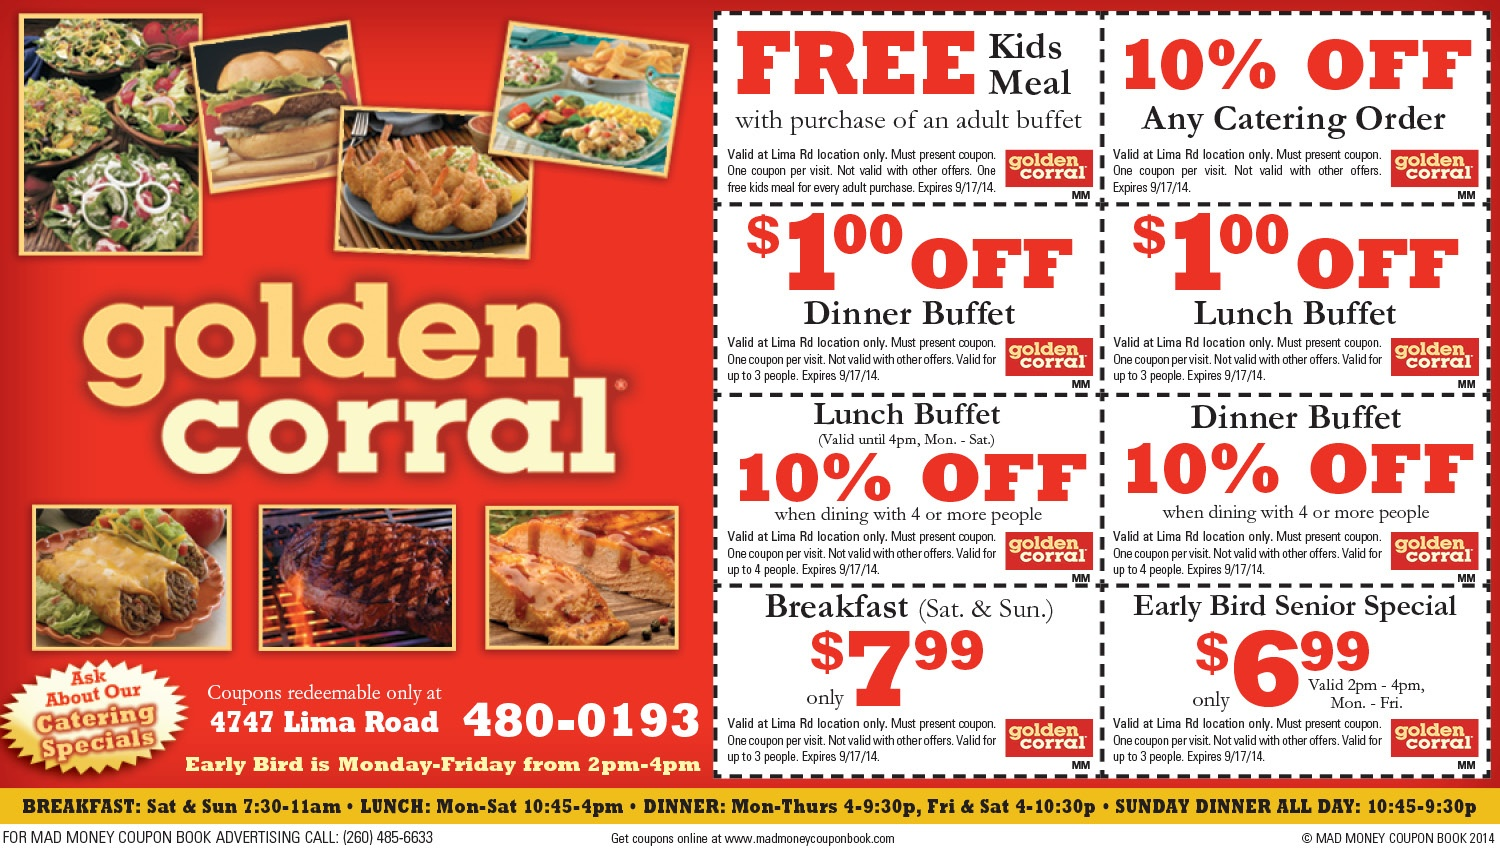 Discounts-And-Coupons - Fort Wayne, In - Golden Corral Buffet &grill - Golden Corral Coupons Buy One Get One Free Printable